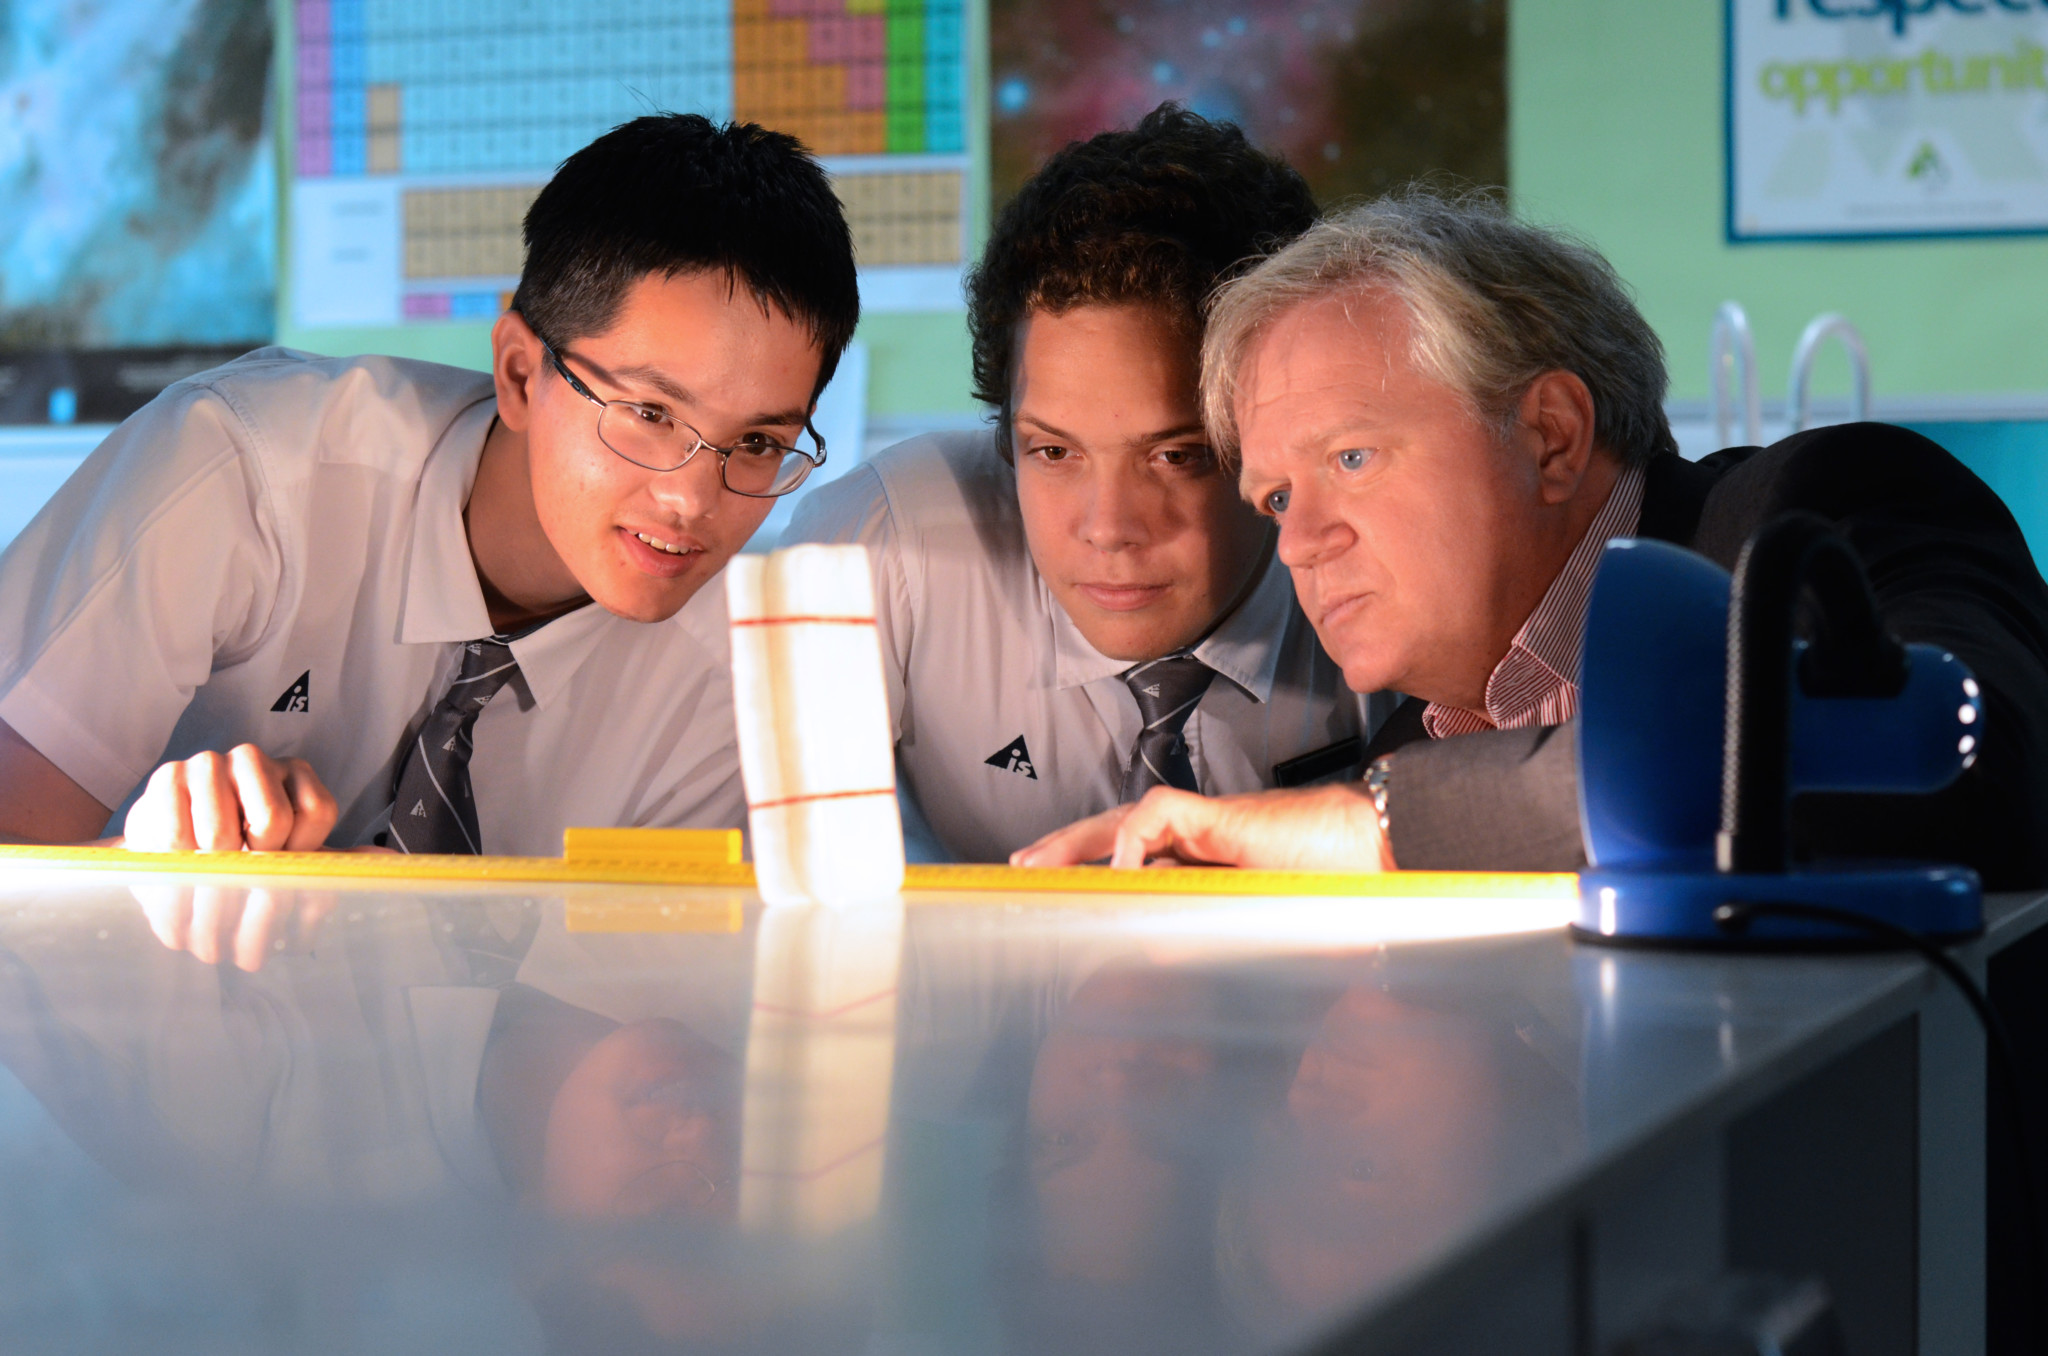 Physics Nobel Laureate Prof. Brian P. Schmidt during a physics master-class at the Australian International School